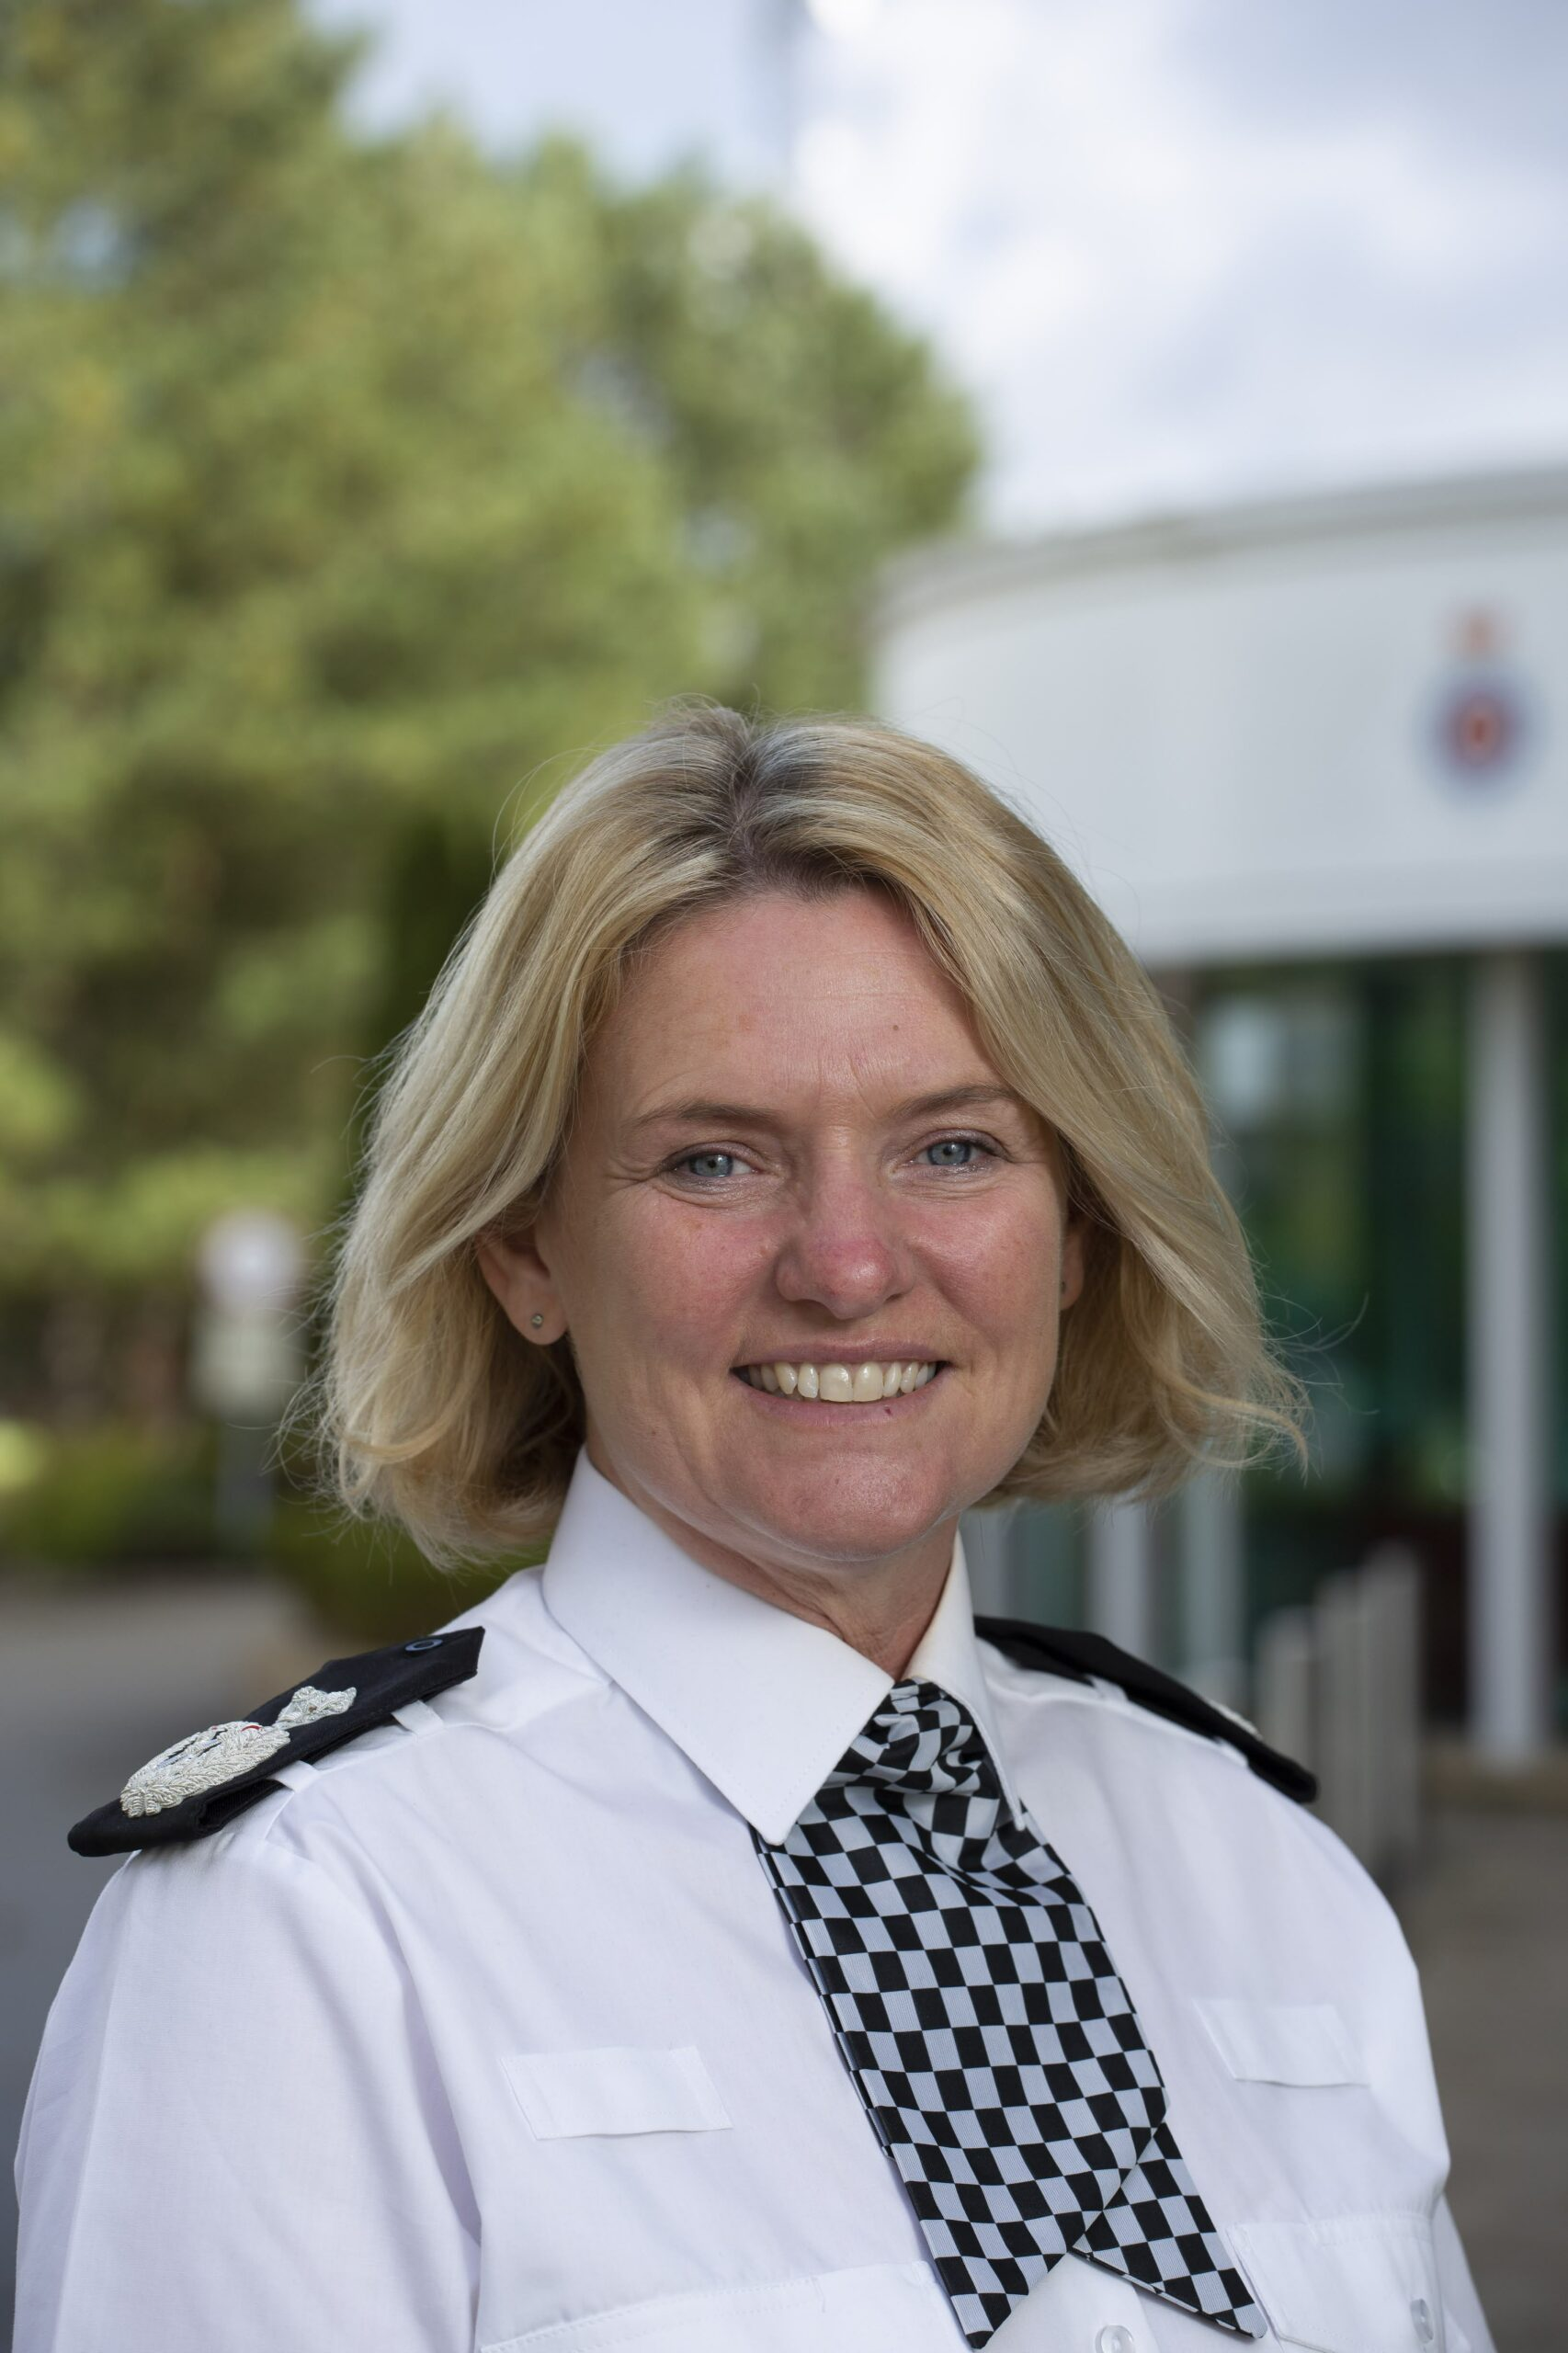 New Deputy Chief Constable joins the force.